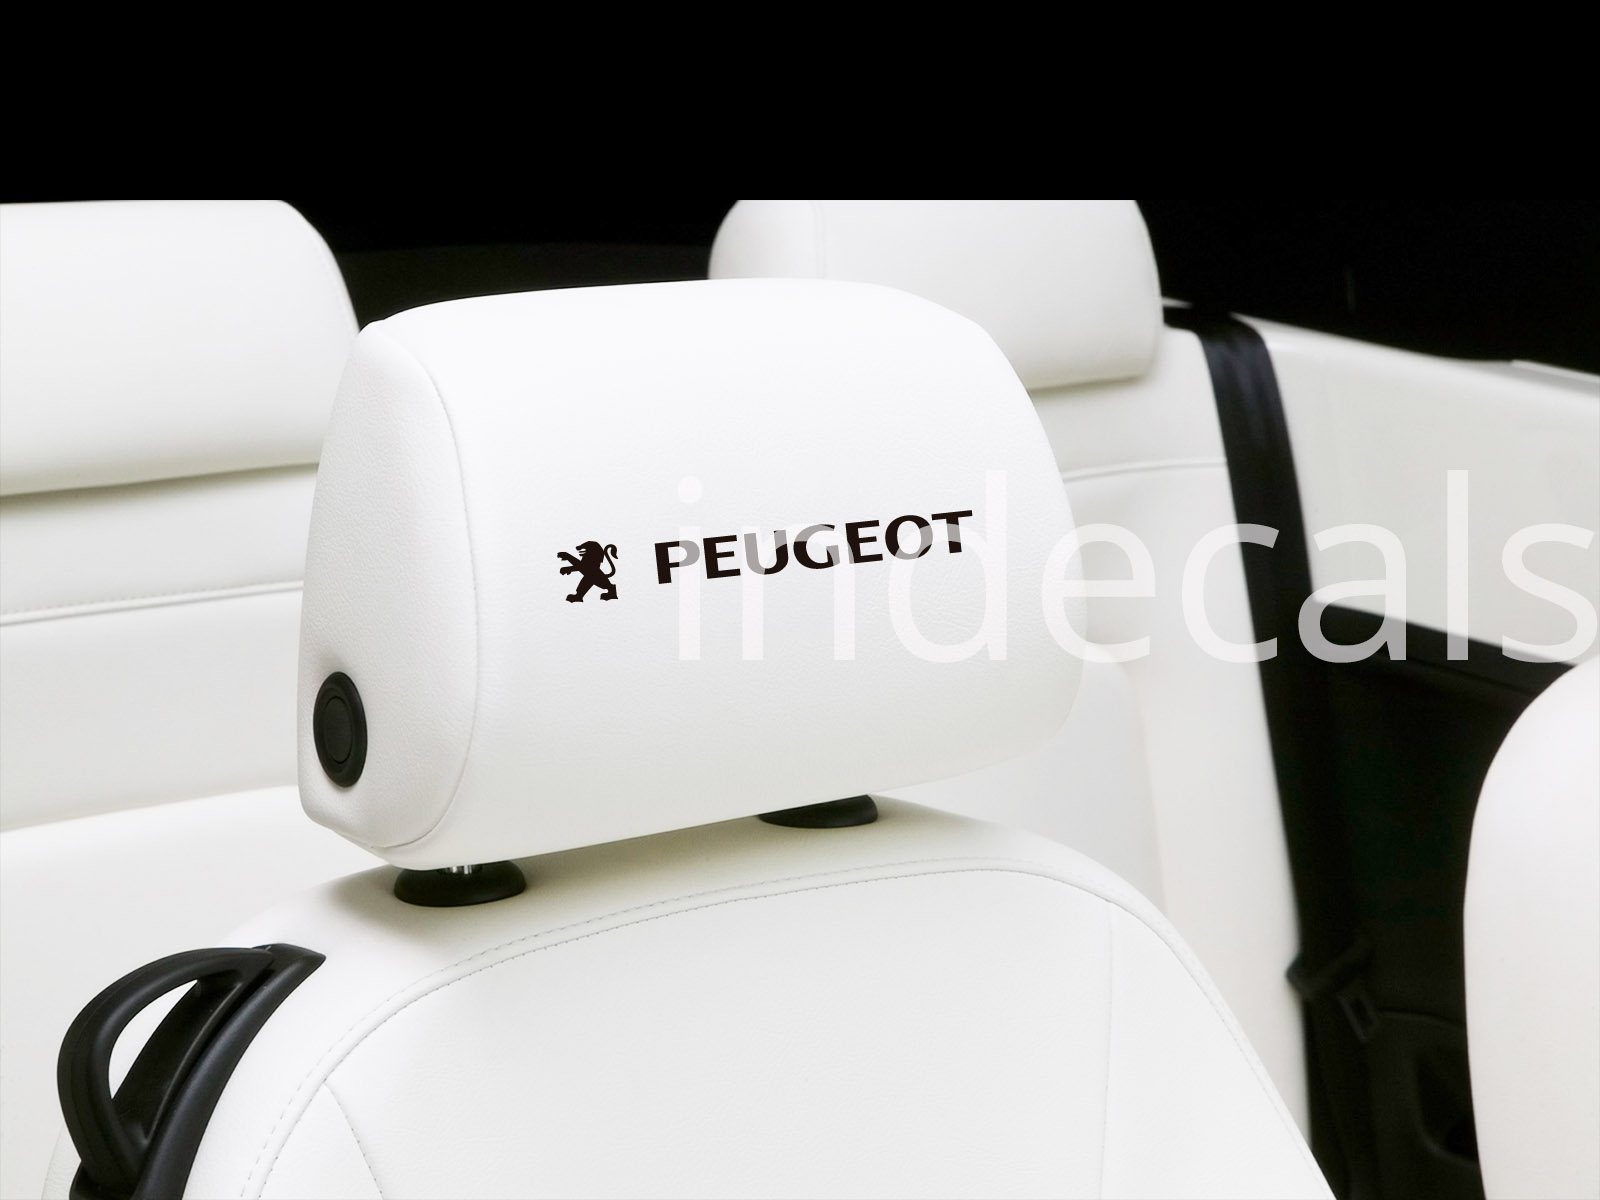 6 x Peugeot Stickers for Headrests - Black